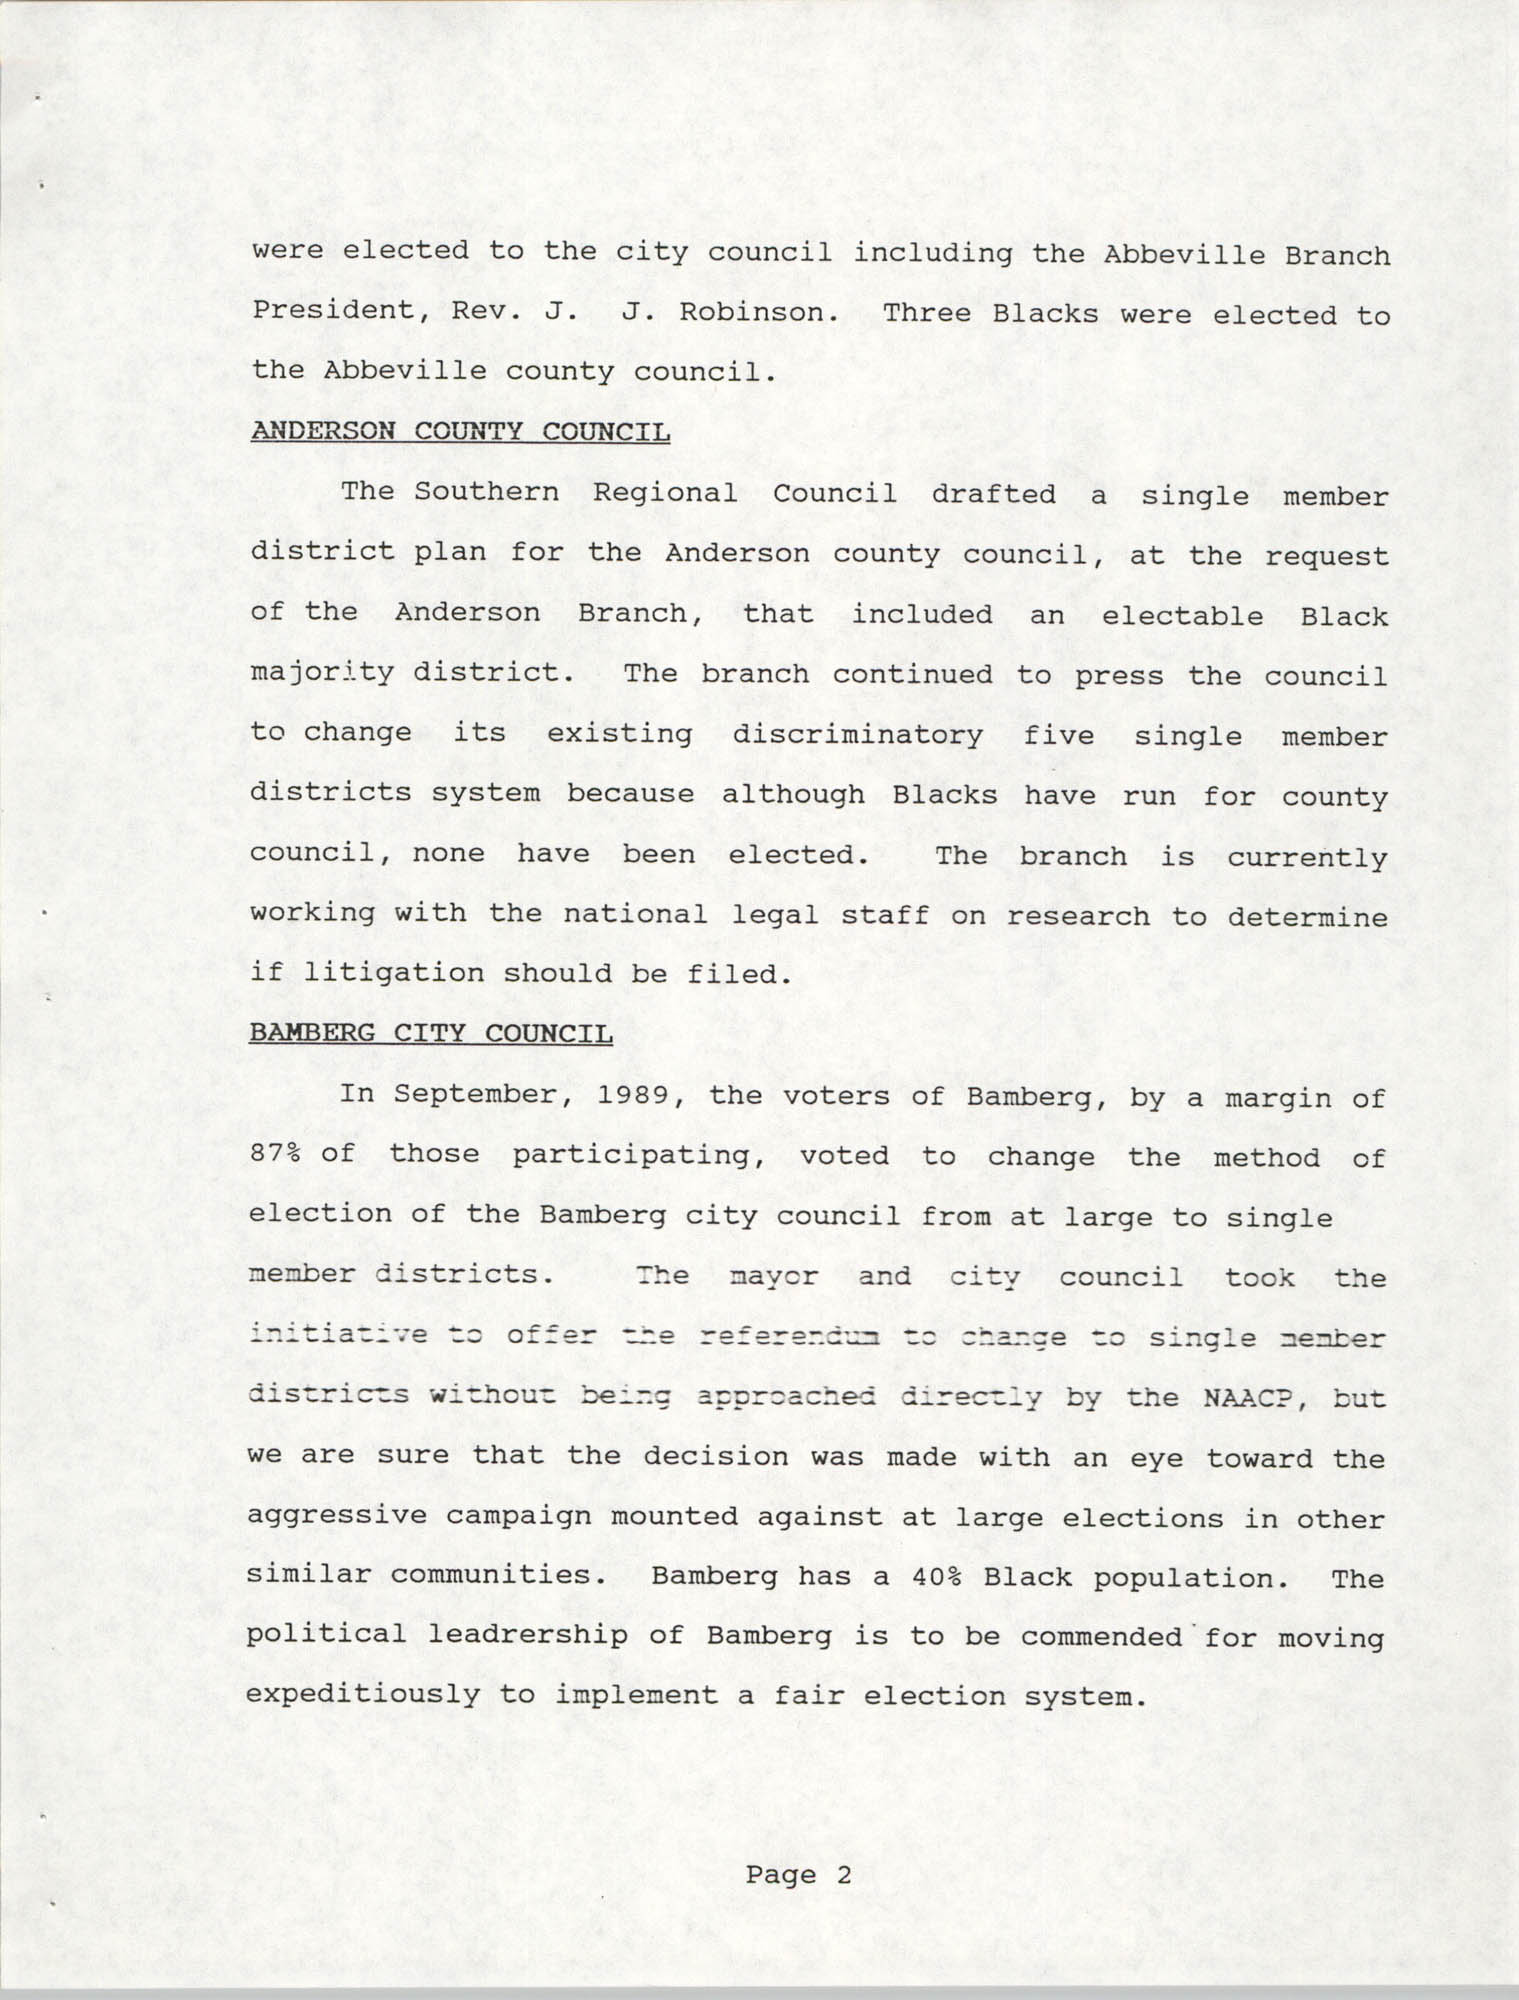 South Carolina Conference of Branches of the NAACP, 1990 Annual Report, Part One, Page 2